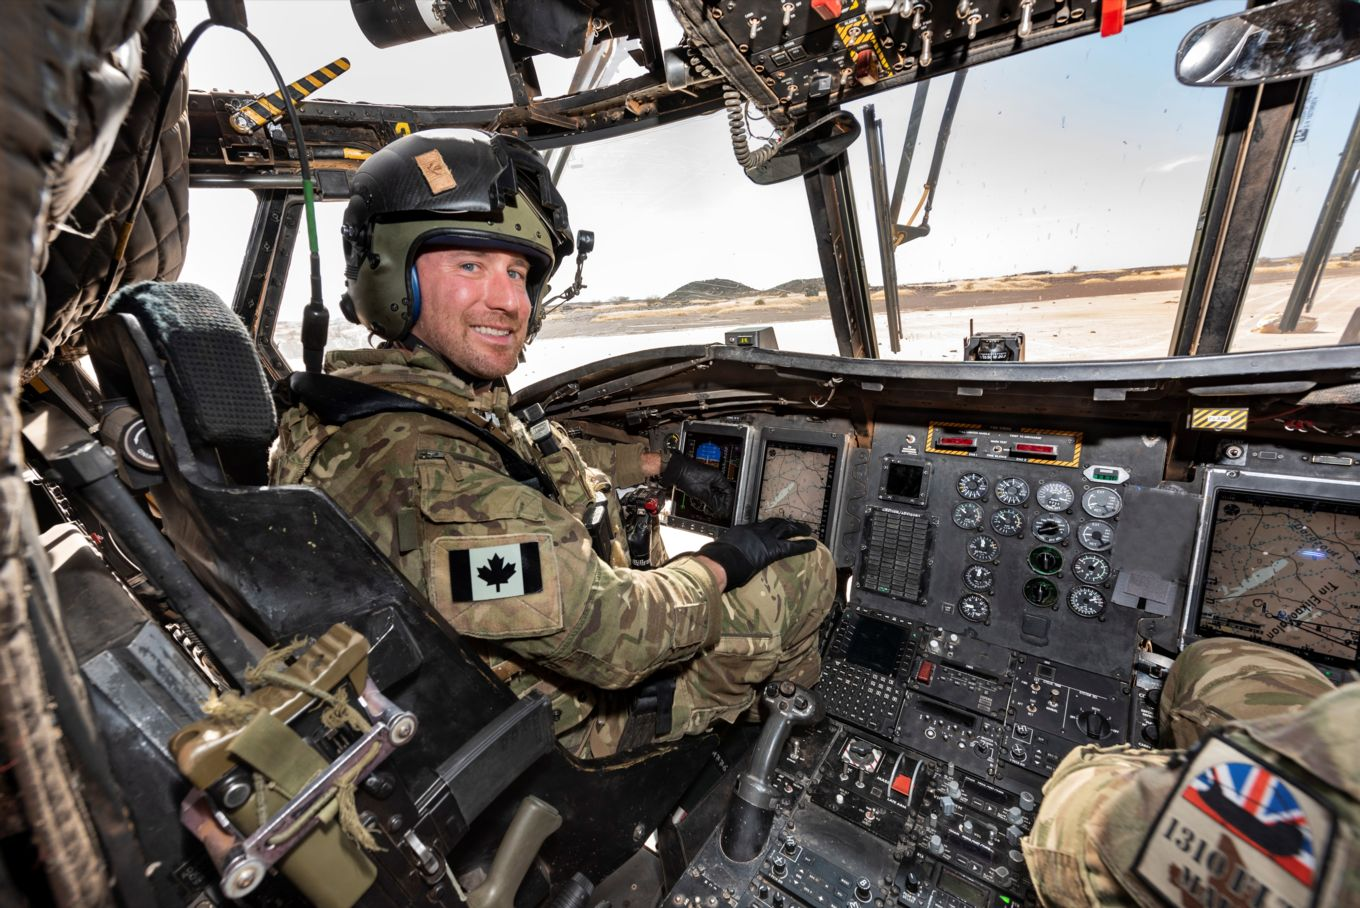 Image shows Captain Stewart in the cockpit of a Chinook helicopter.